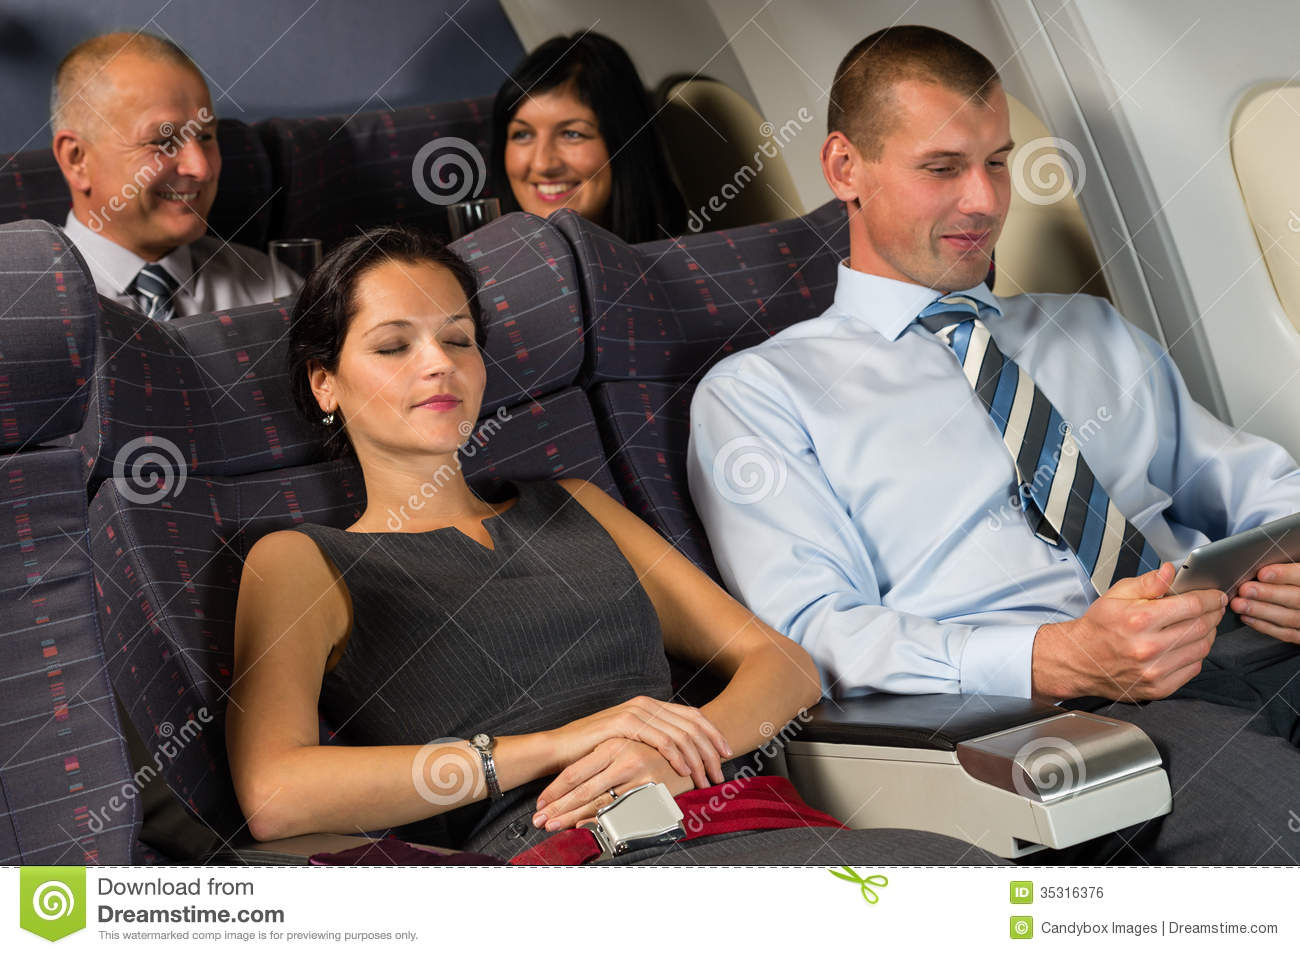 Airplane Passenger Relax Flight Cabin Sleep Passengers Businesspeople